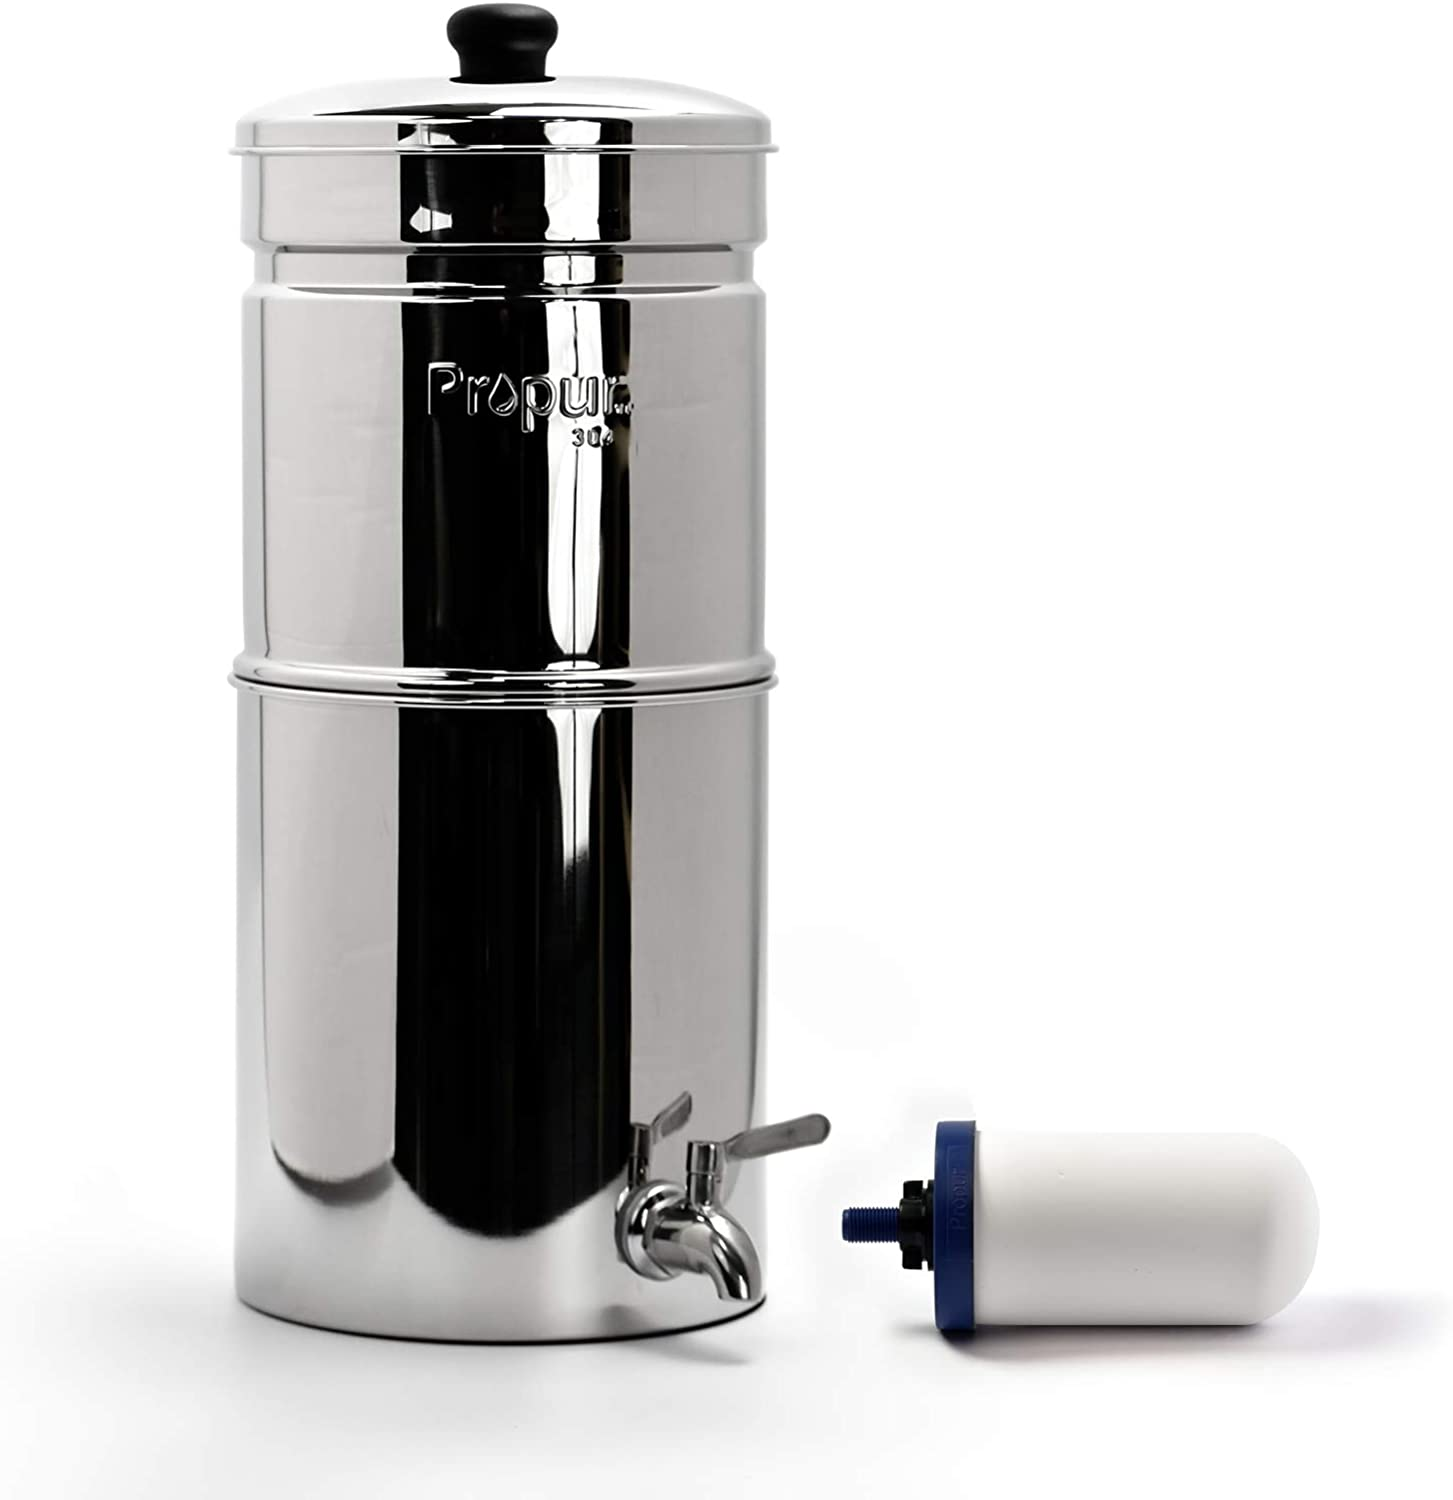 Propur PP-102POG Water Filter Dispenser